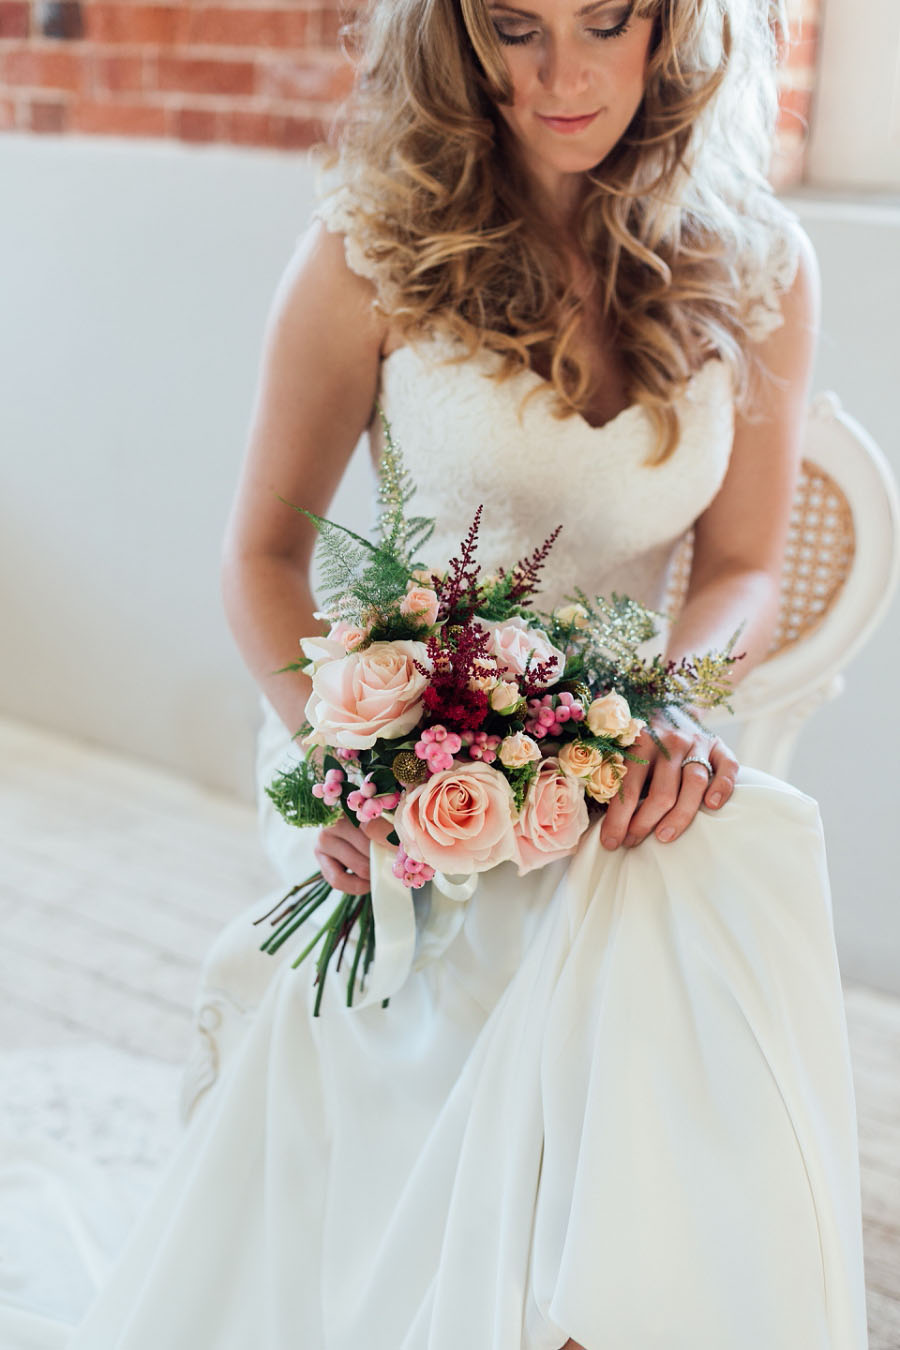 A Romantic Inspirational Bridal Shoot With Touches of Boho Glam & Gold! (77)